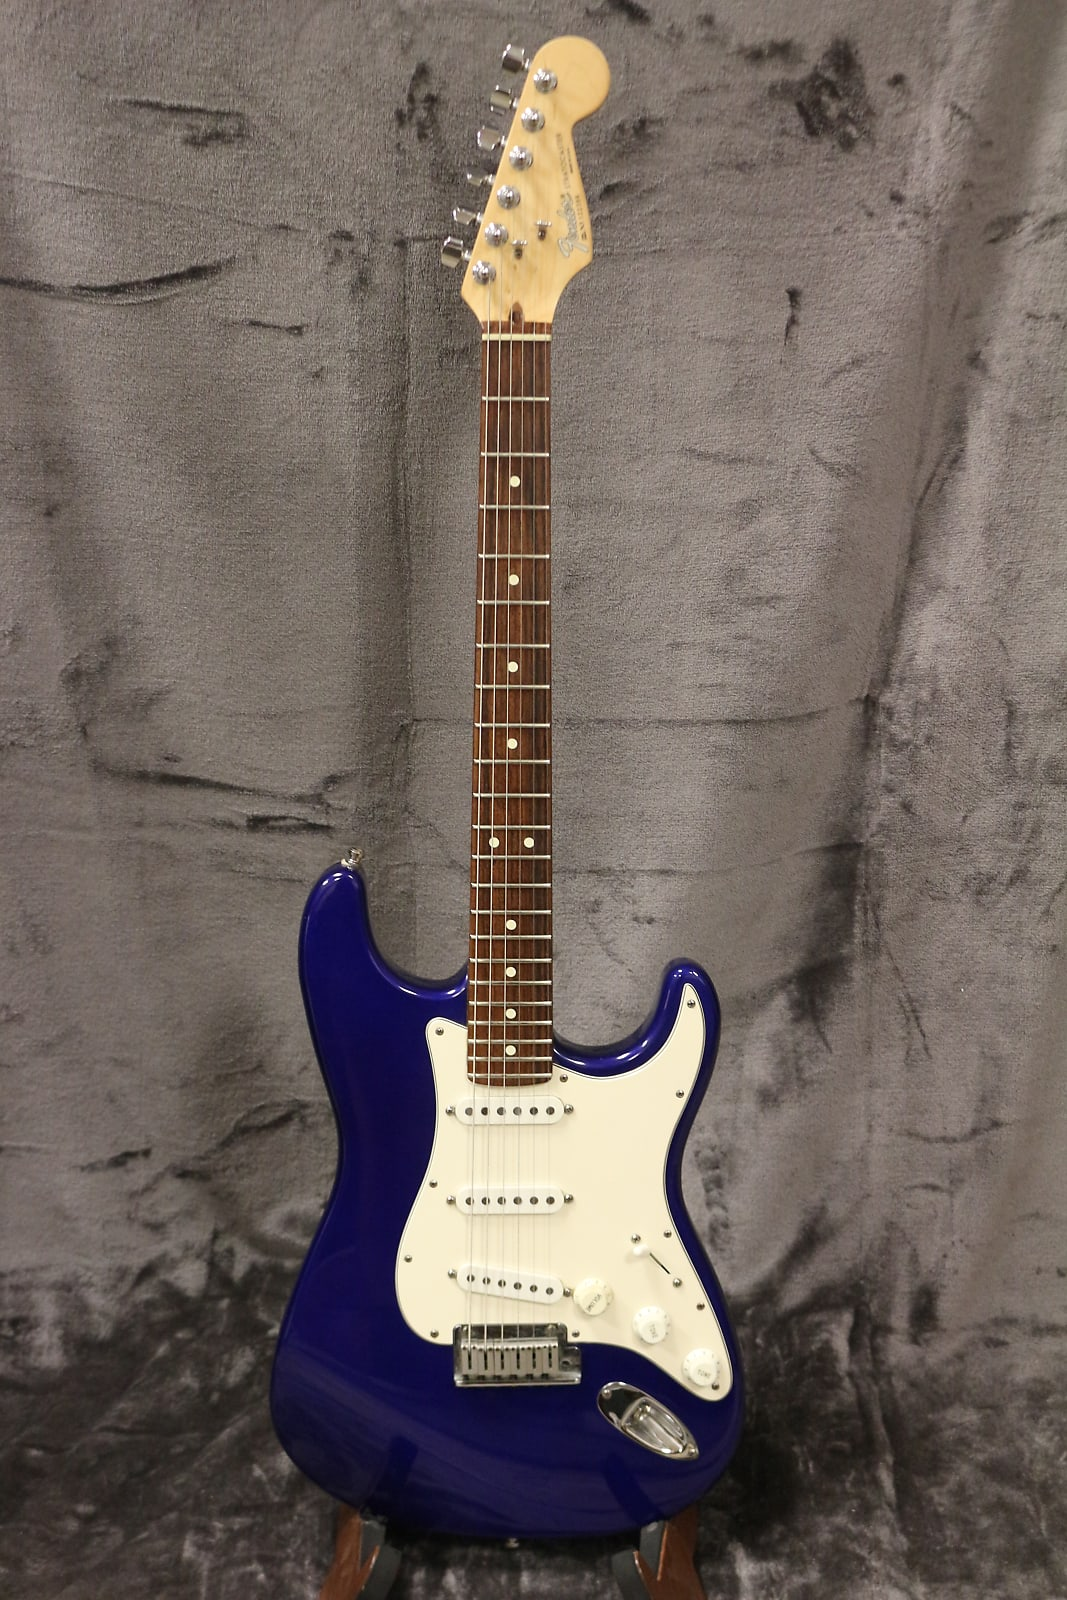 fender american standard stratocaster 1993 midnight blue. Black Bedroom Furniture Sets. Home Design Ideas